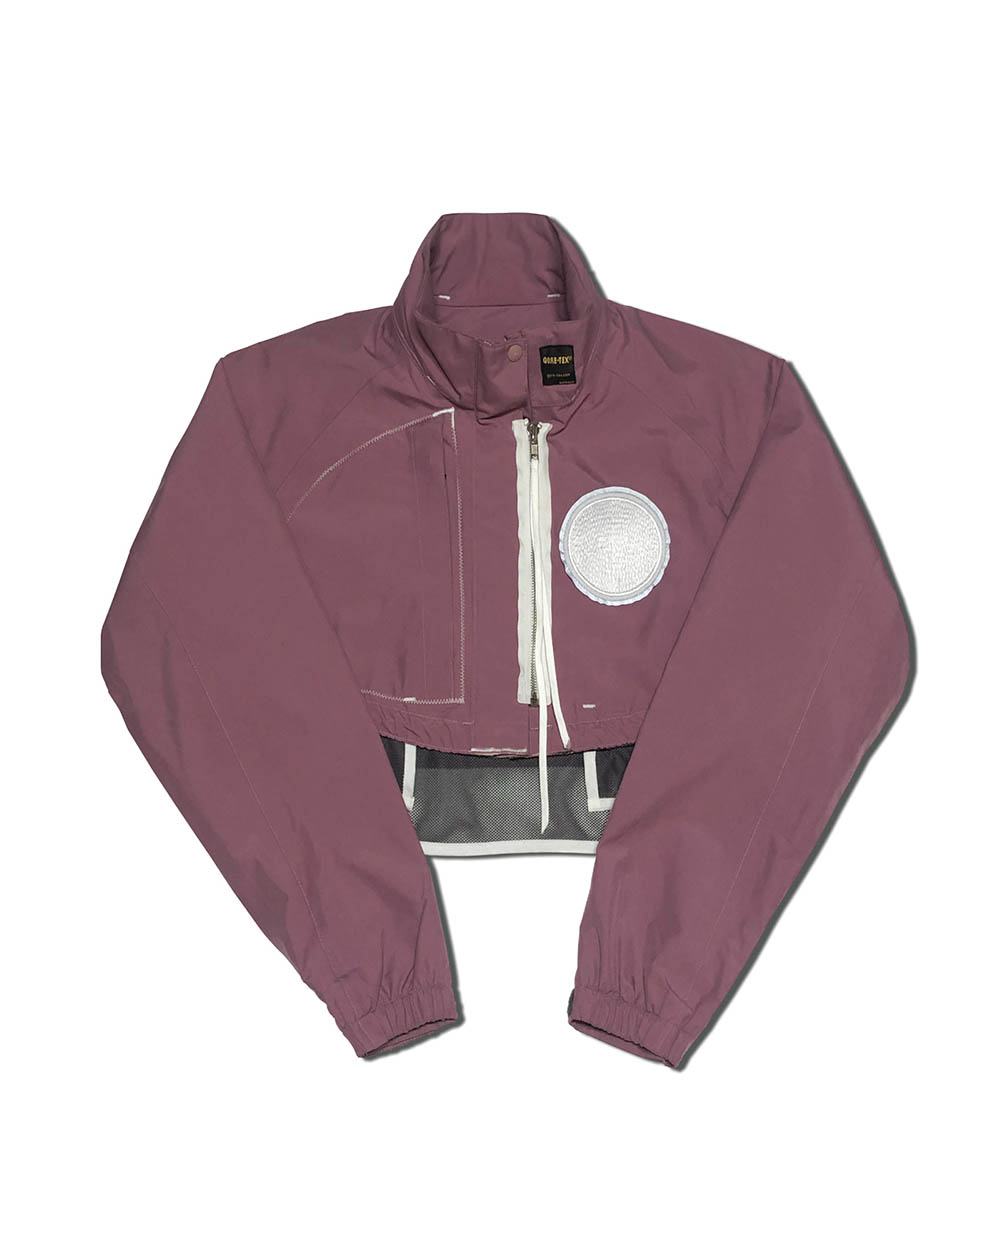 GOOD NEWS OUTDOOR CROP JACKET (Pink)